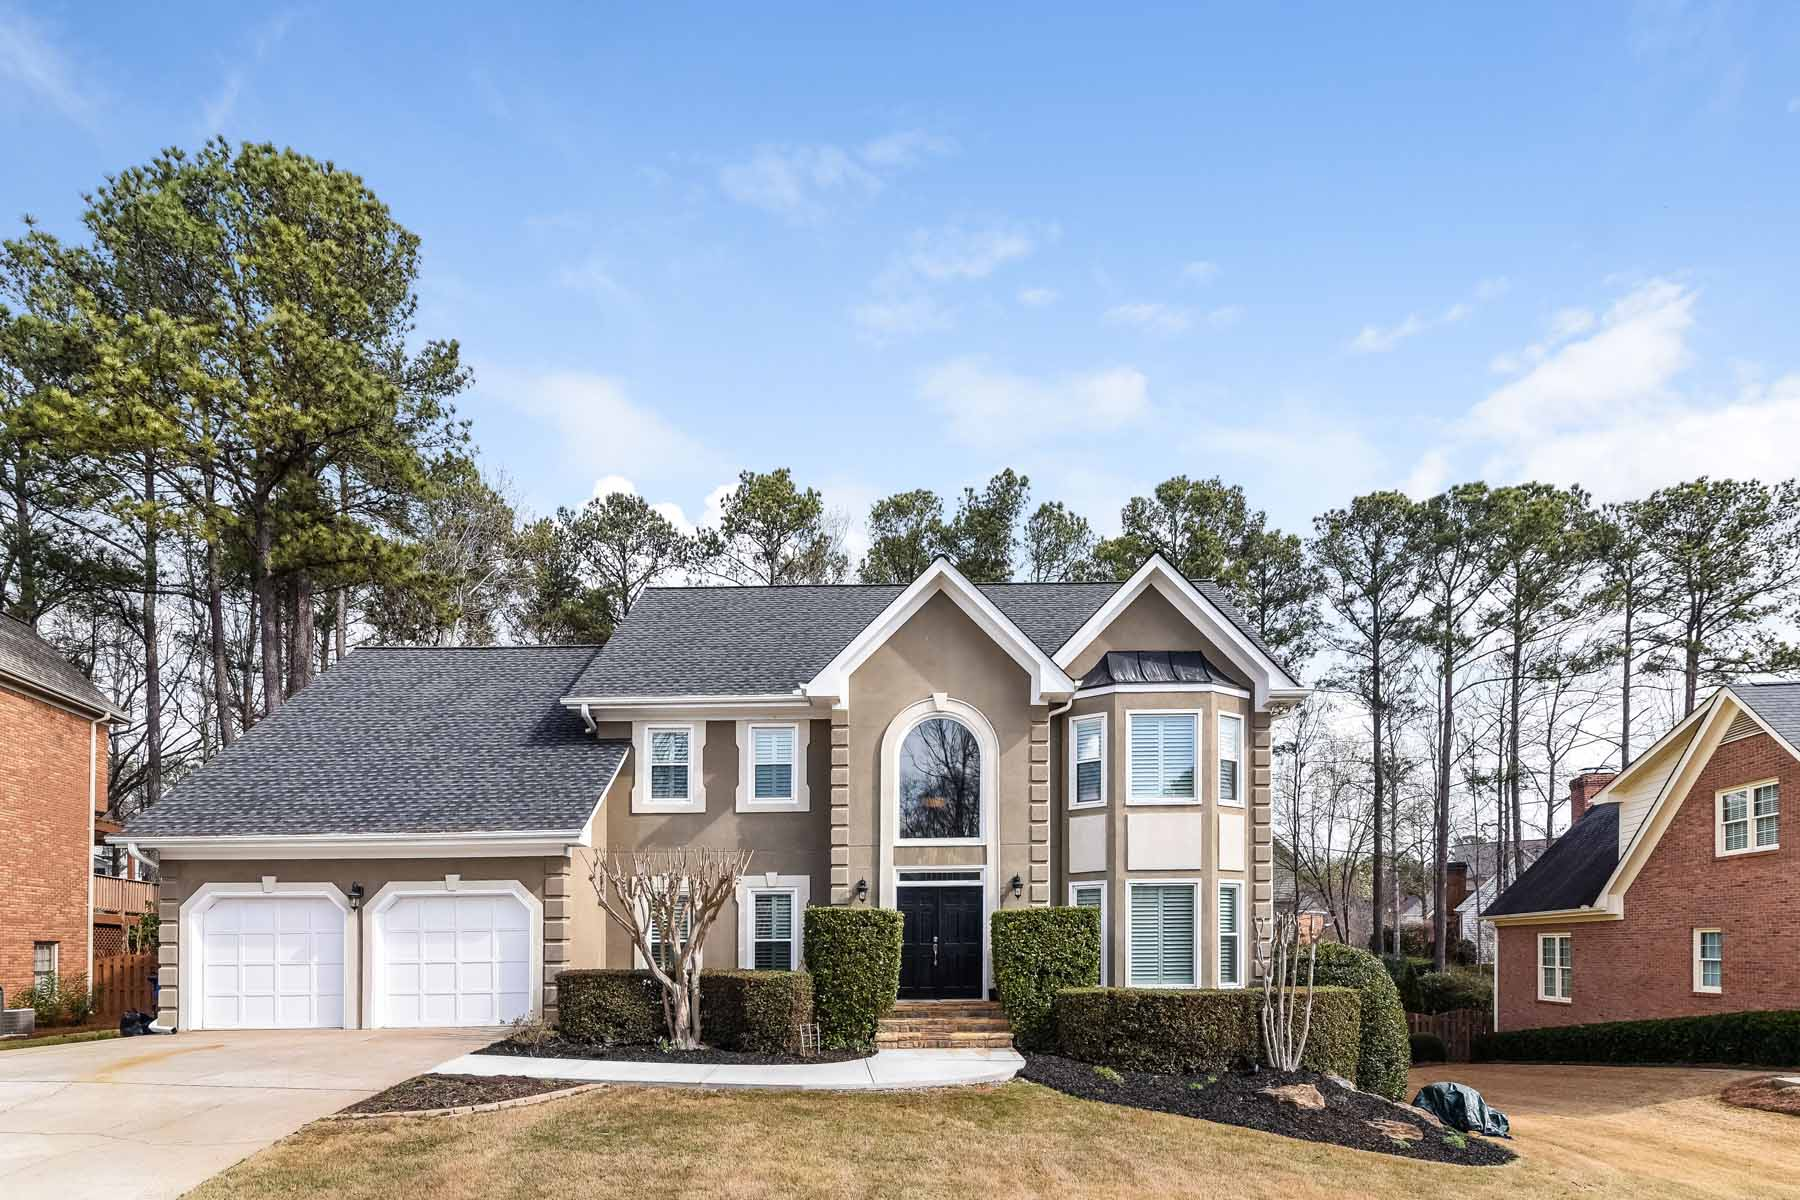 一戸建て のために 売買 アット Wonderful Home With Outdoor Oasis Includes Heated Pool and Spa 10465 Tuxford Dr Alpharetta, ジョージア, 30022 アメリカ合衆国